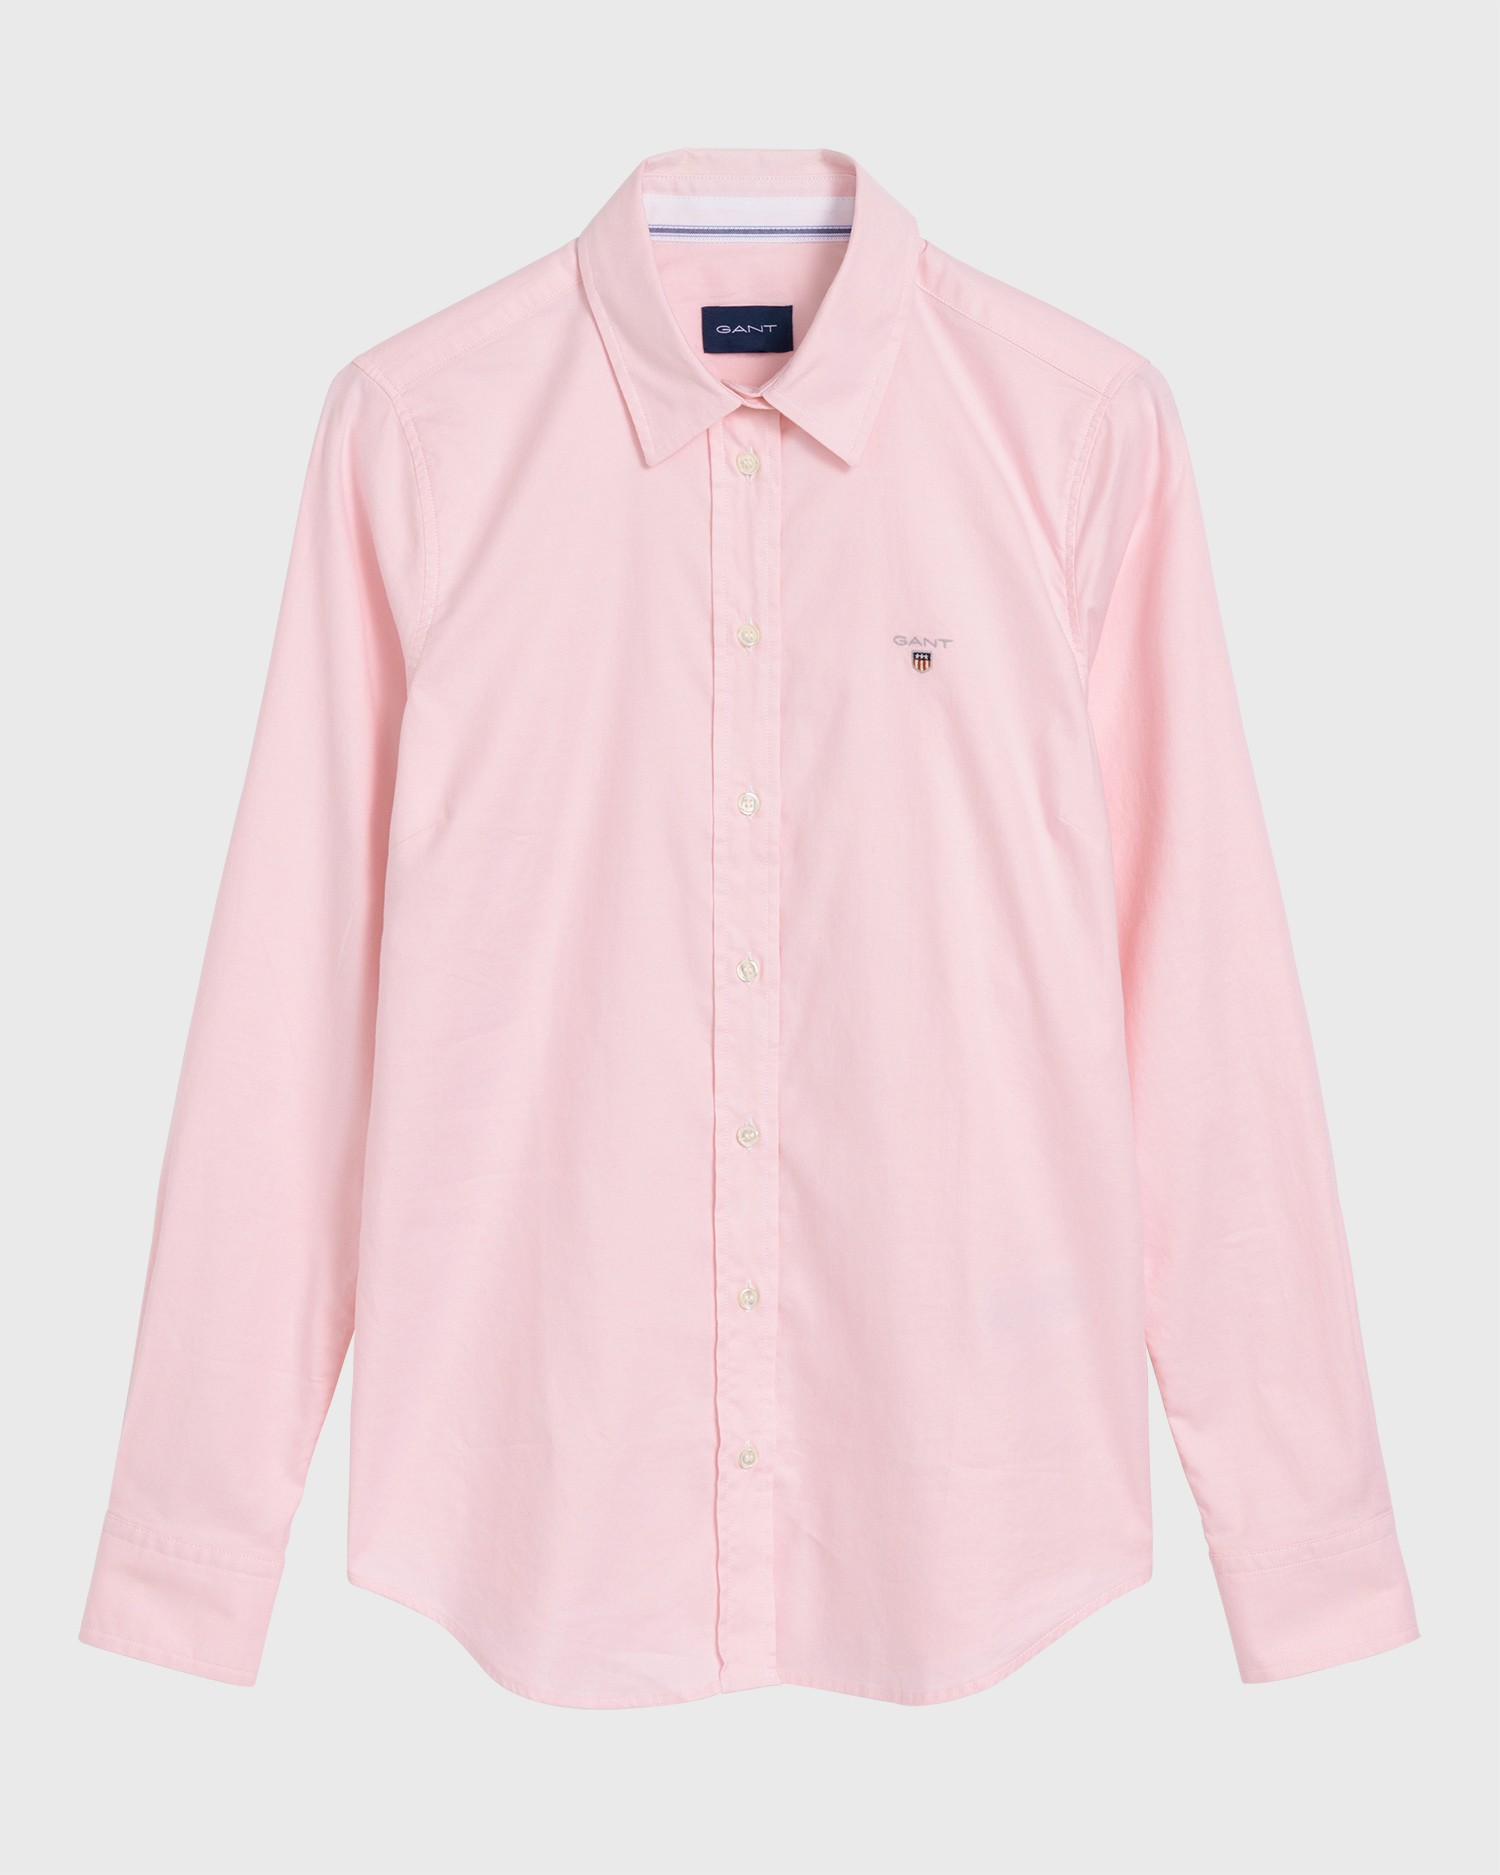 GANT Women's Stretch Oxford Solid Shirt - 432681